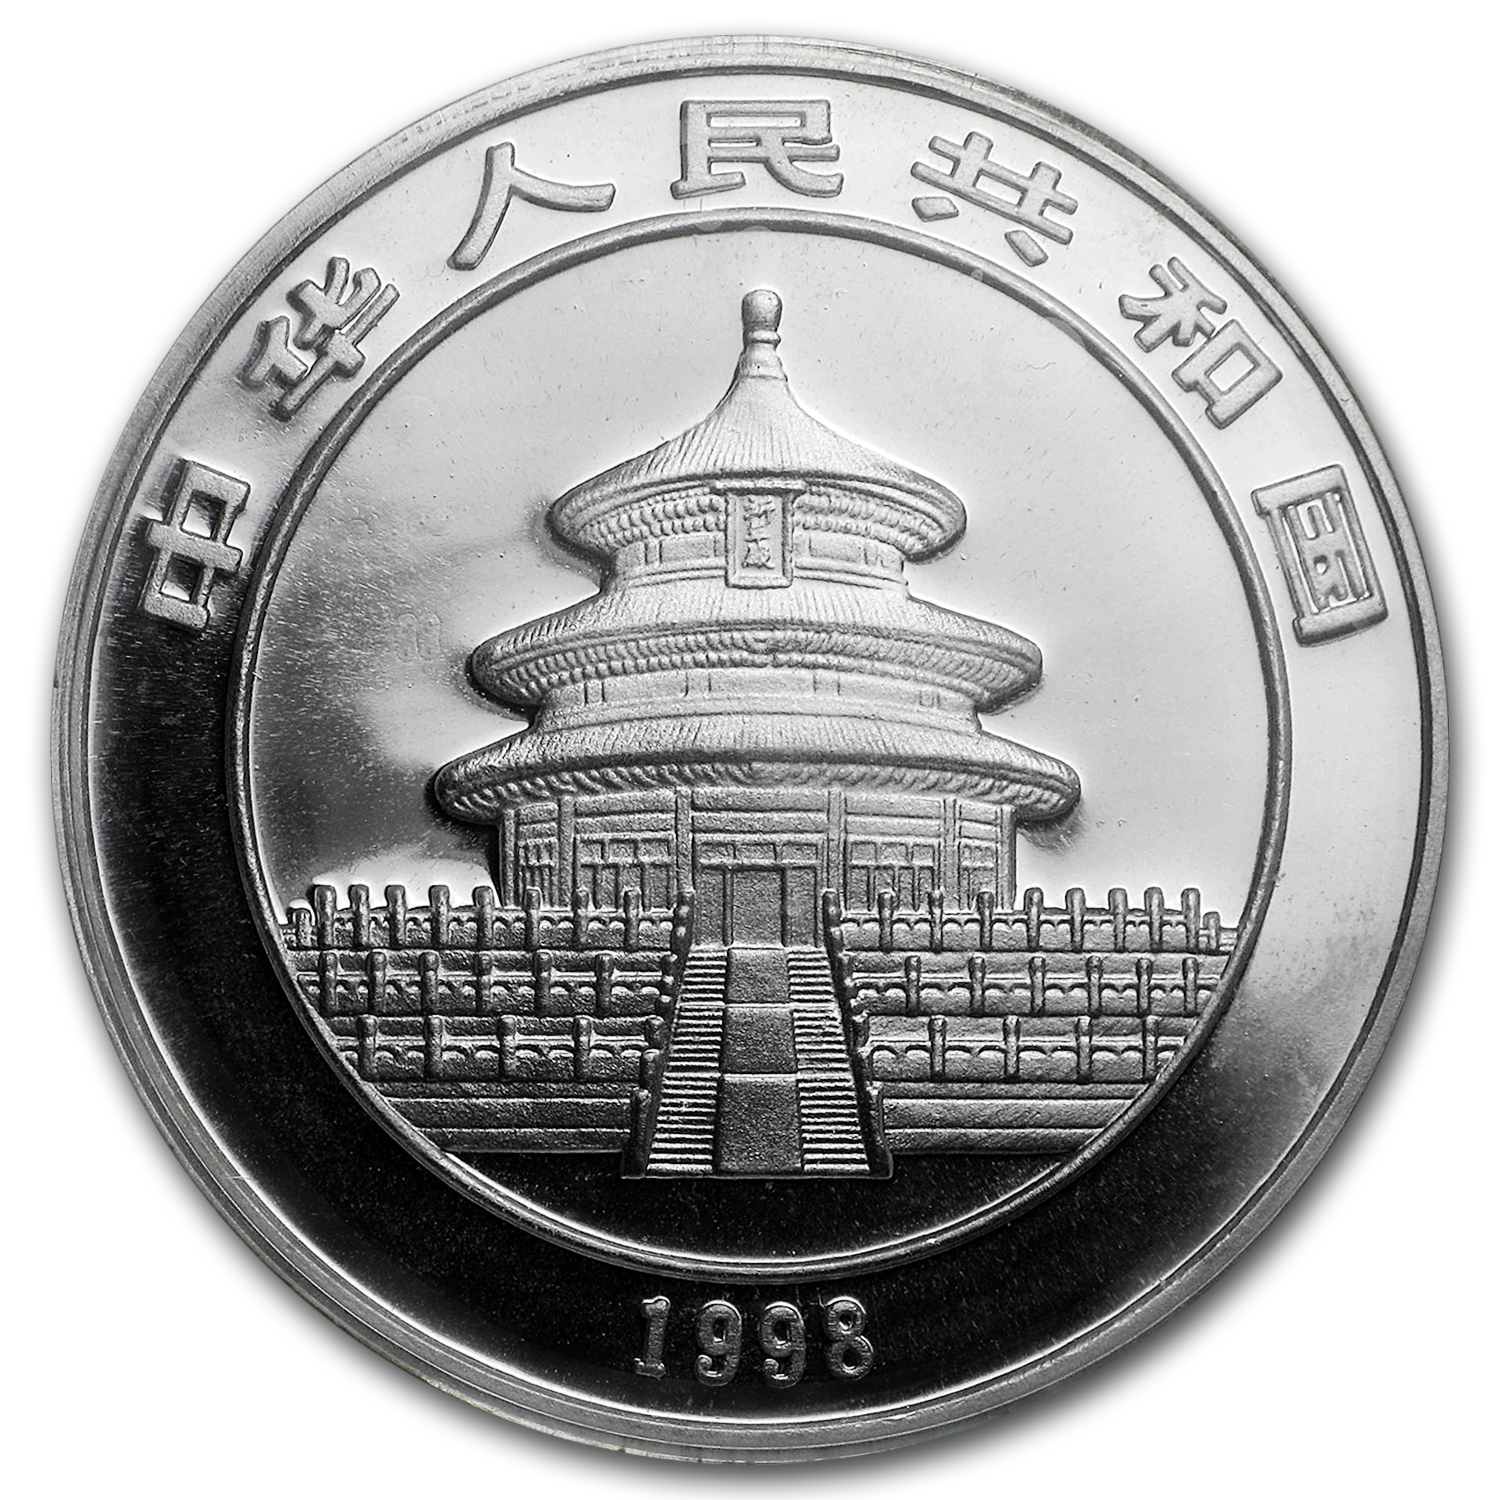 1998 China 1 oz Silver Panda Large Date BU (Sealed)